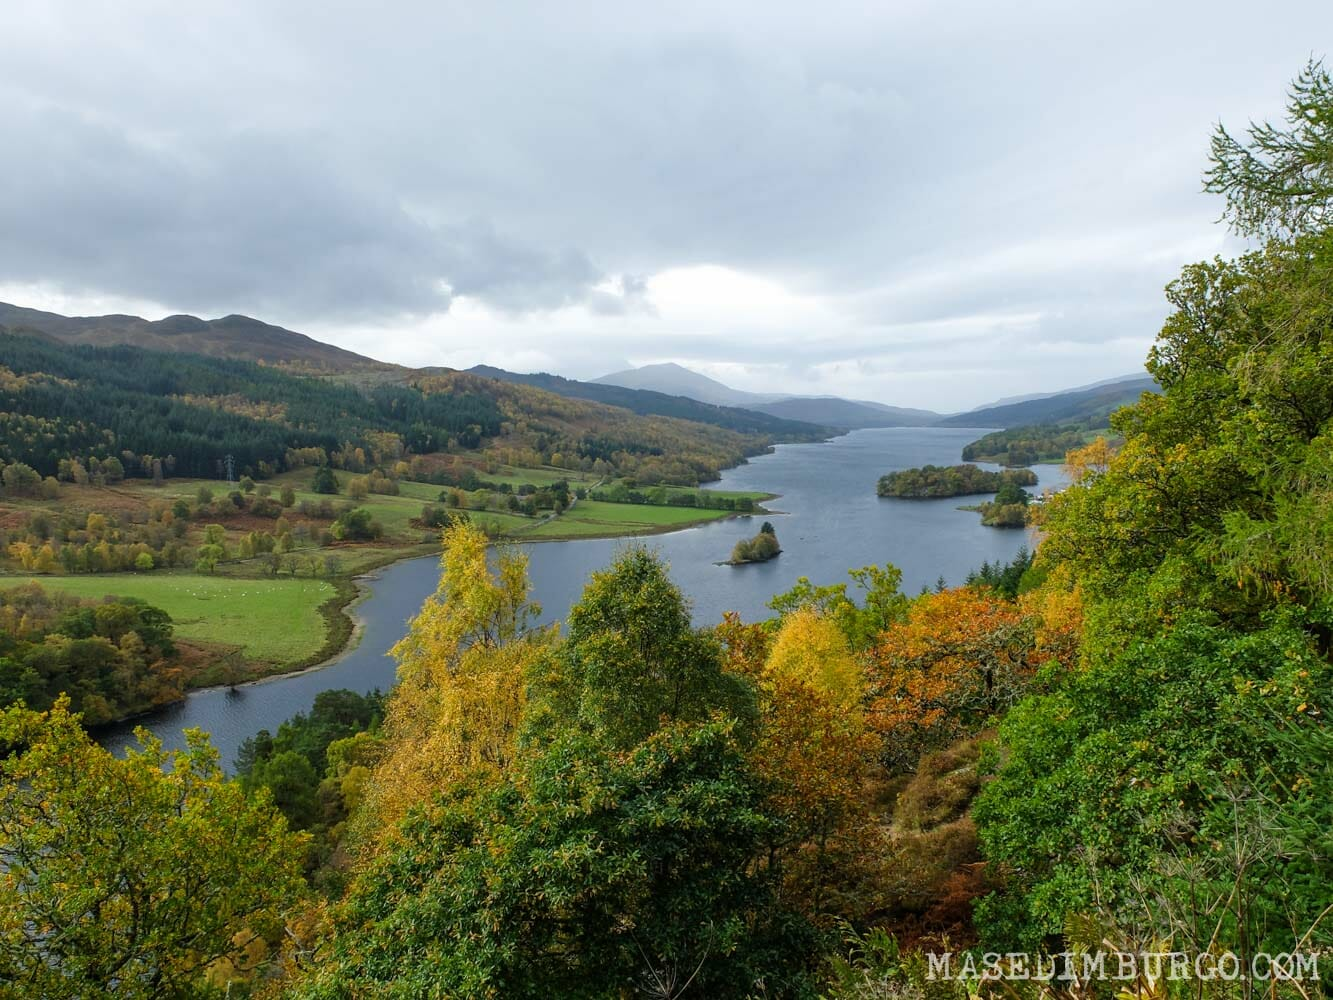 Visitar-Pitlochry-Escocia-Queens-View